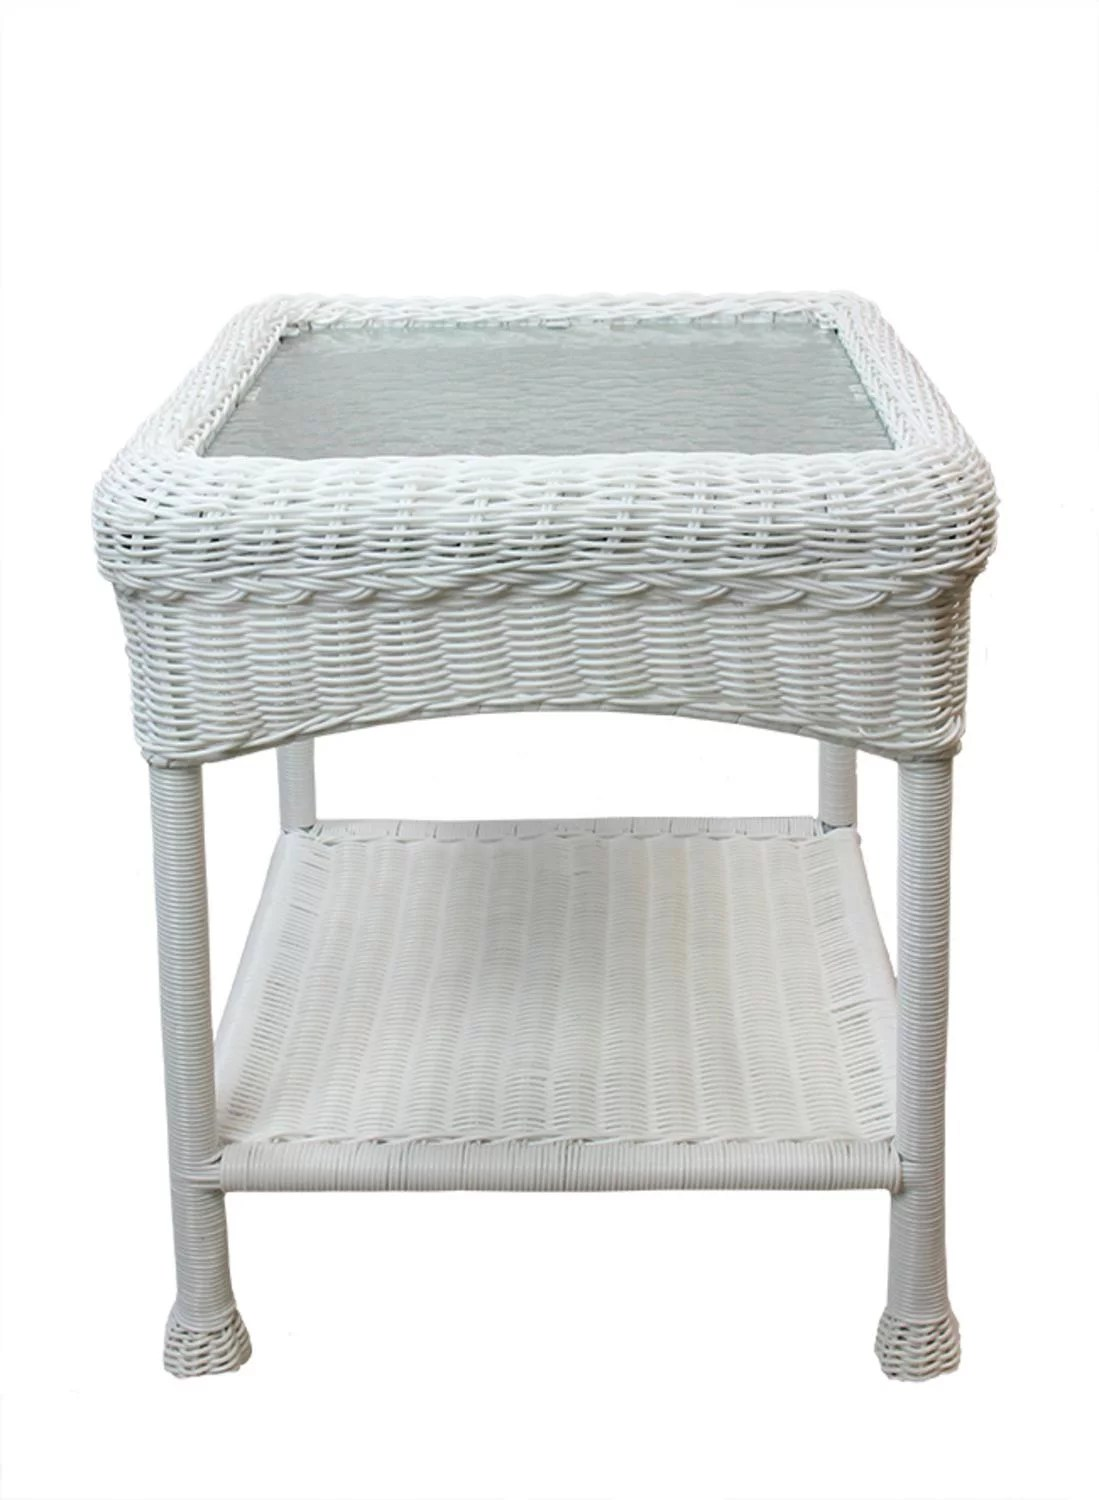 22 white resin wicker outdoor patio side table with glass top and storage shelf